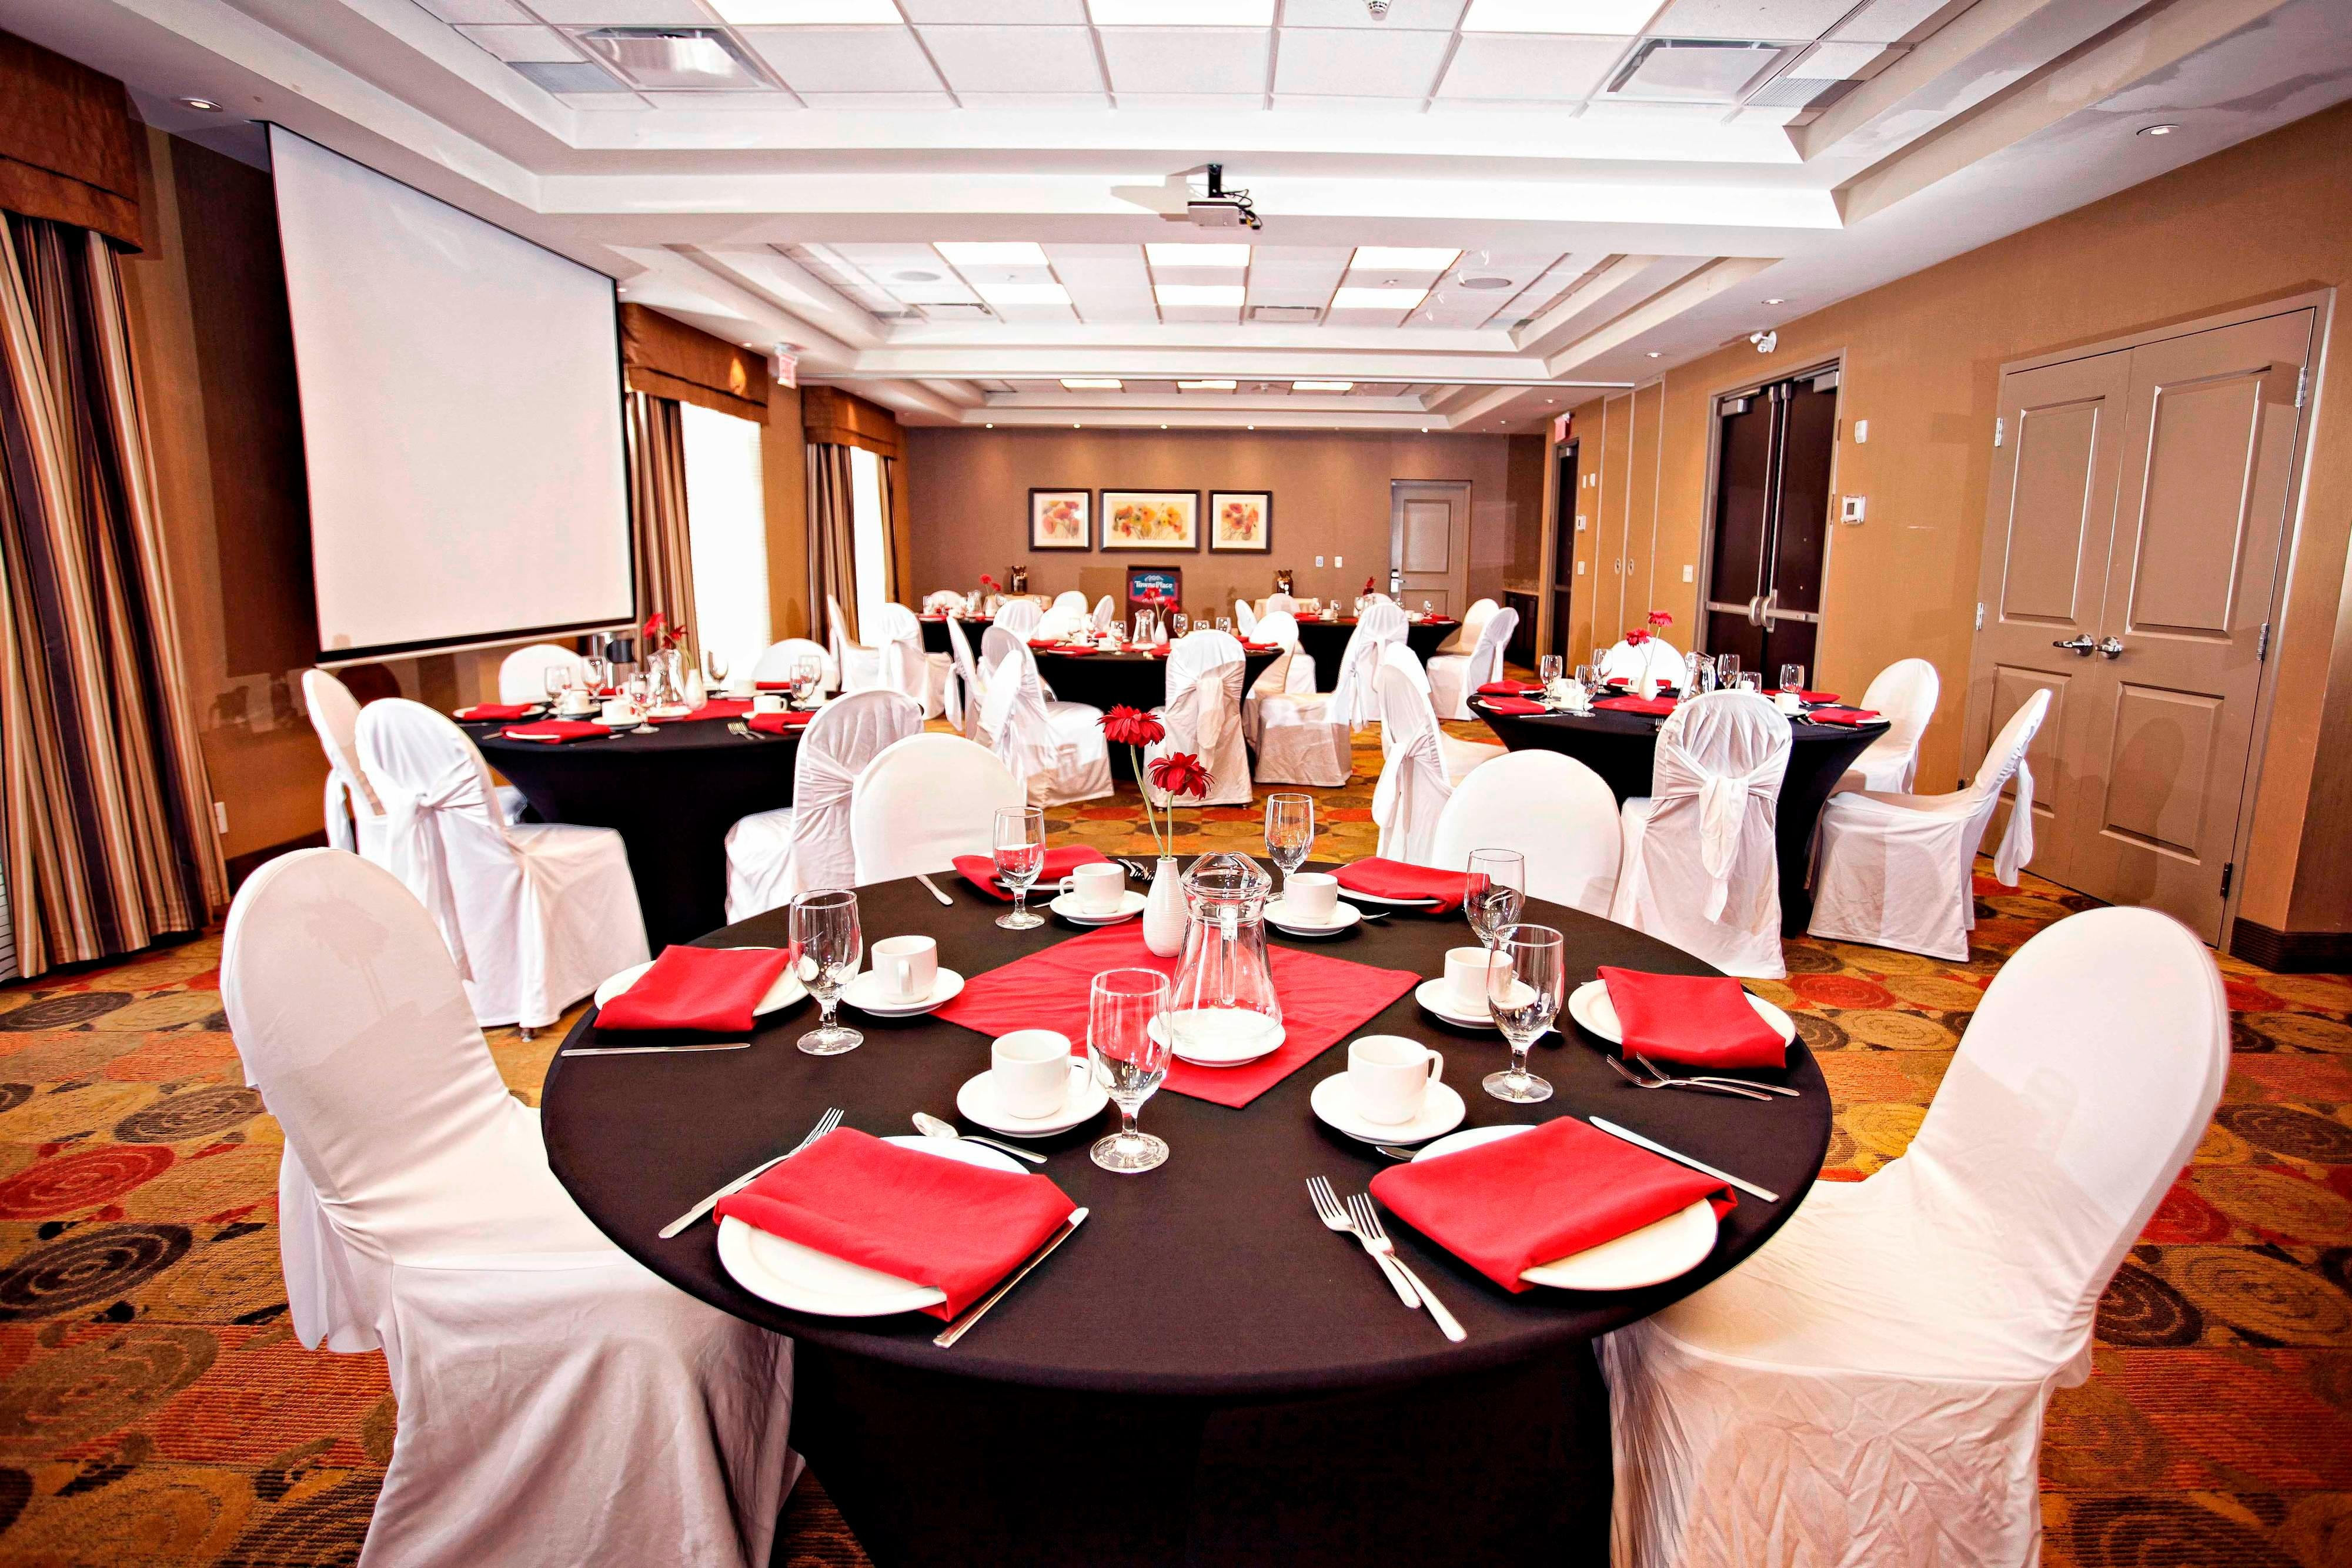 TownePlace Suites Metting Rooms